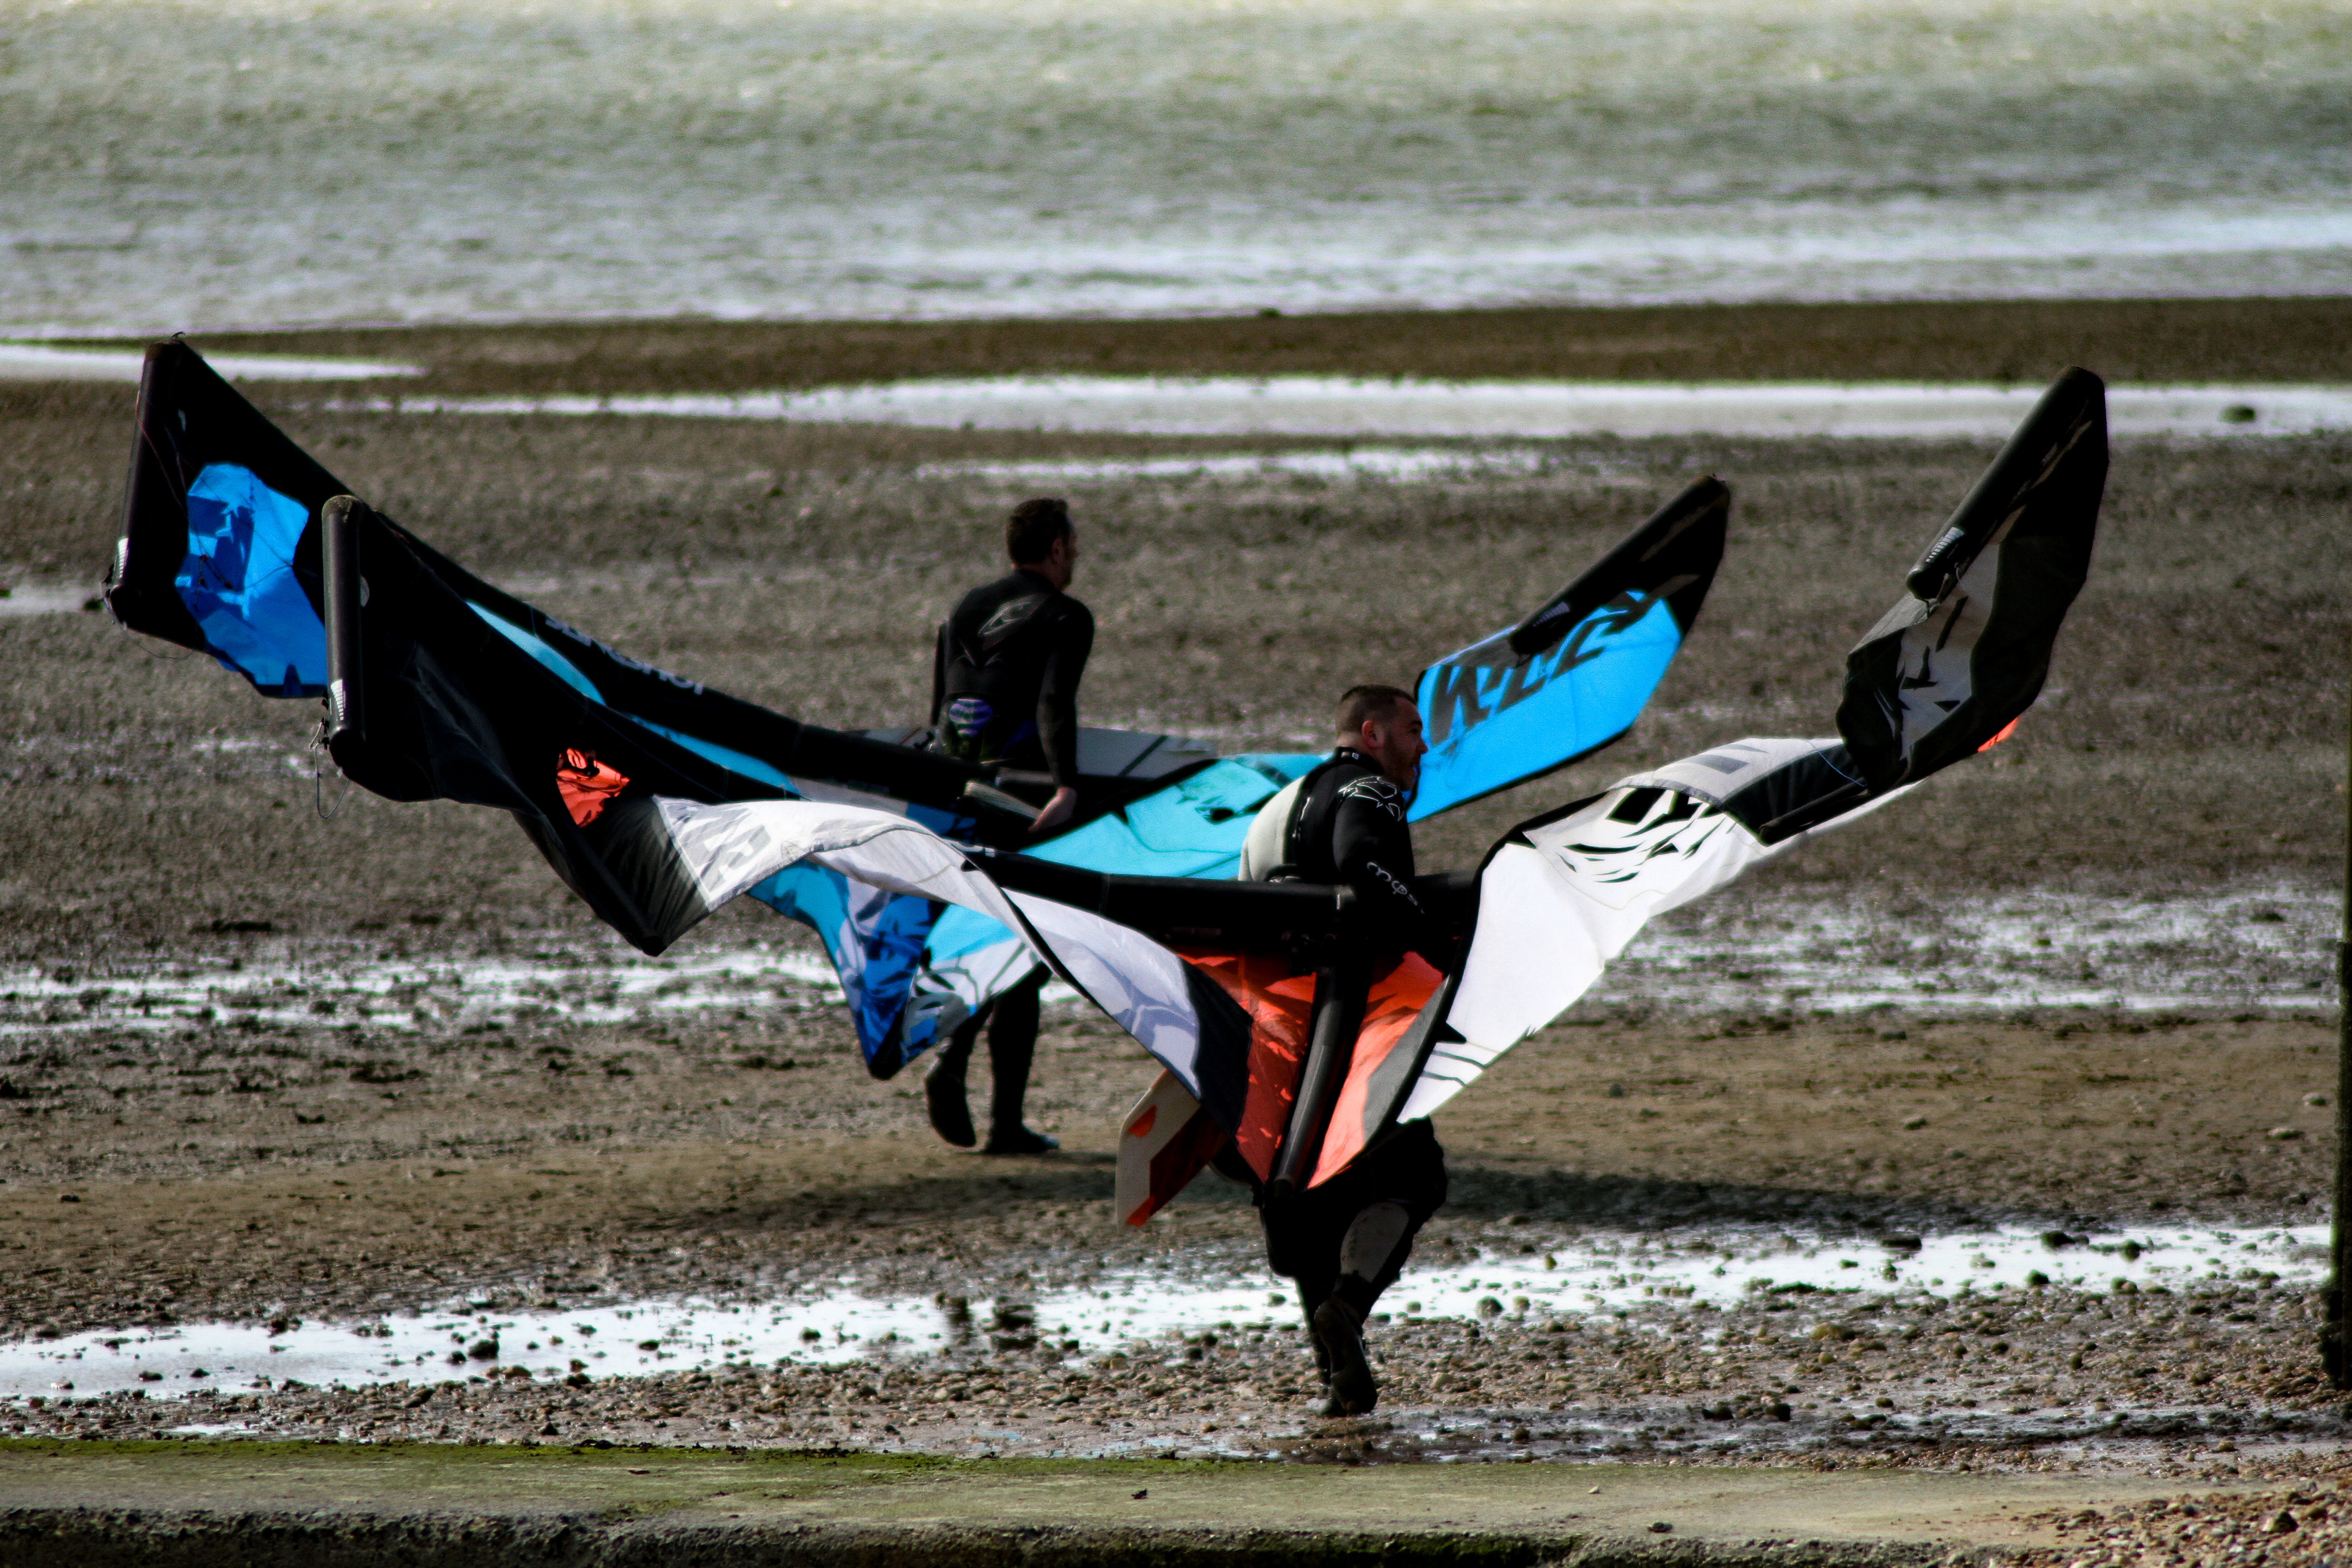 Men Carrying Black Red and White Kite